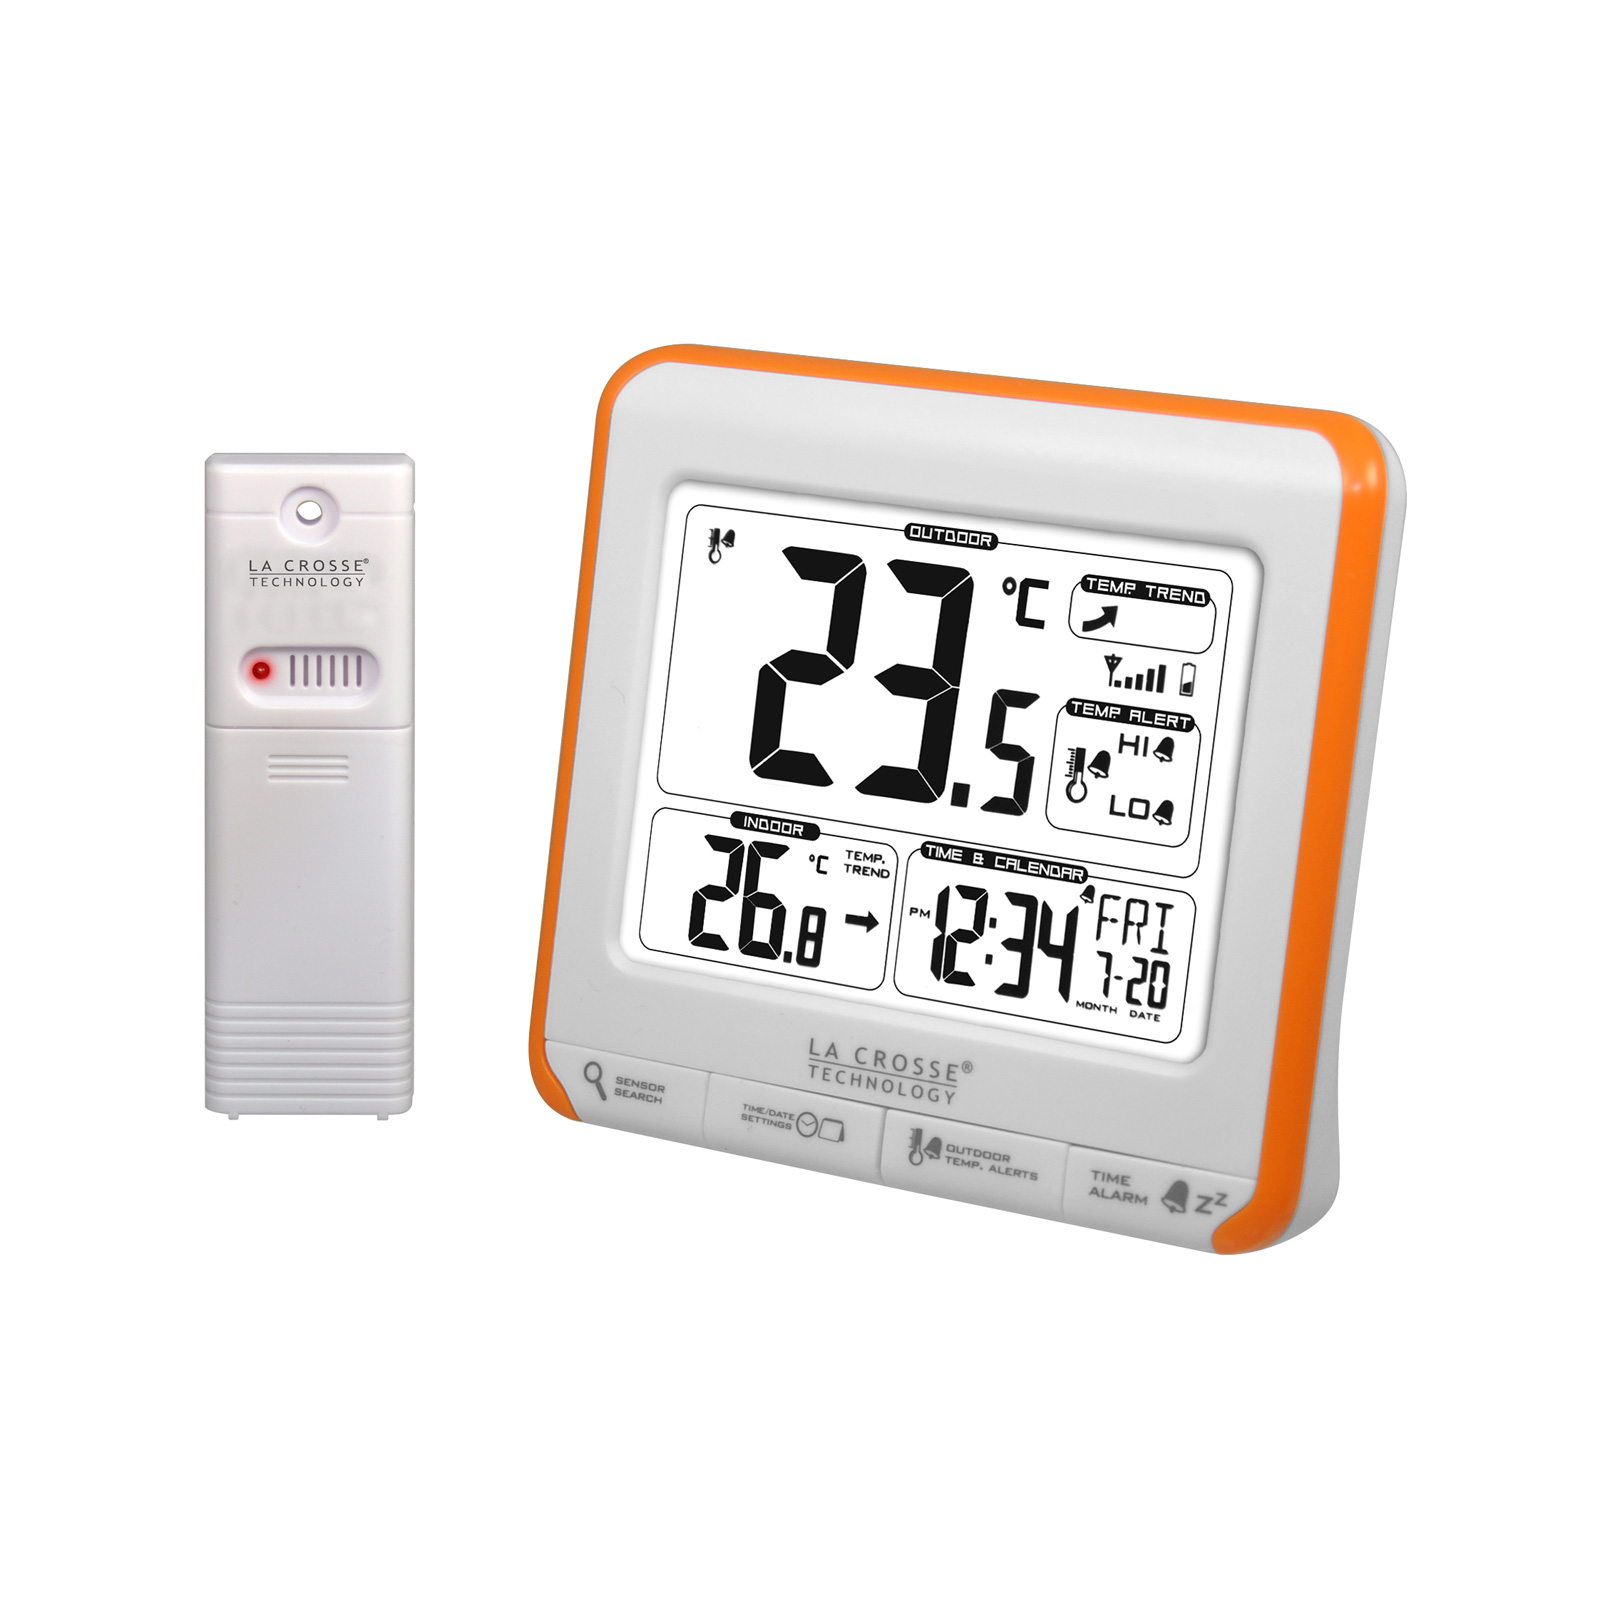 Station Meteo Interieur Exterieur Sans Fil La Crosse Technology Ws6811 Orange Station Météo La